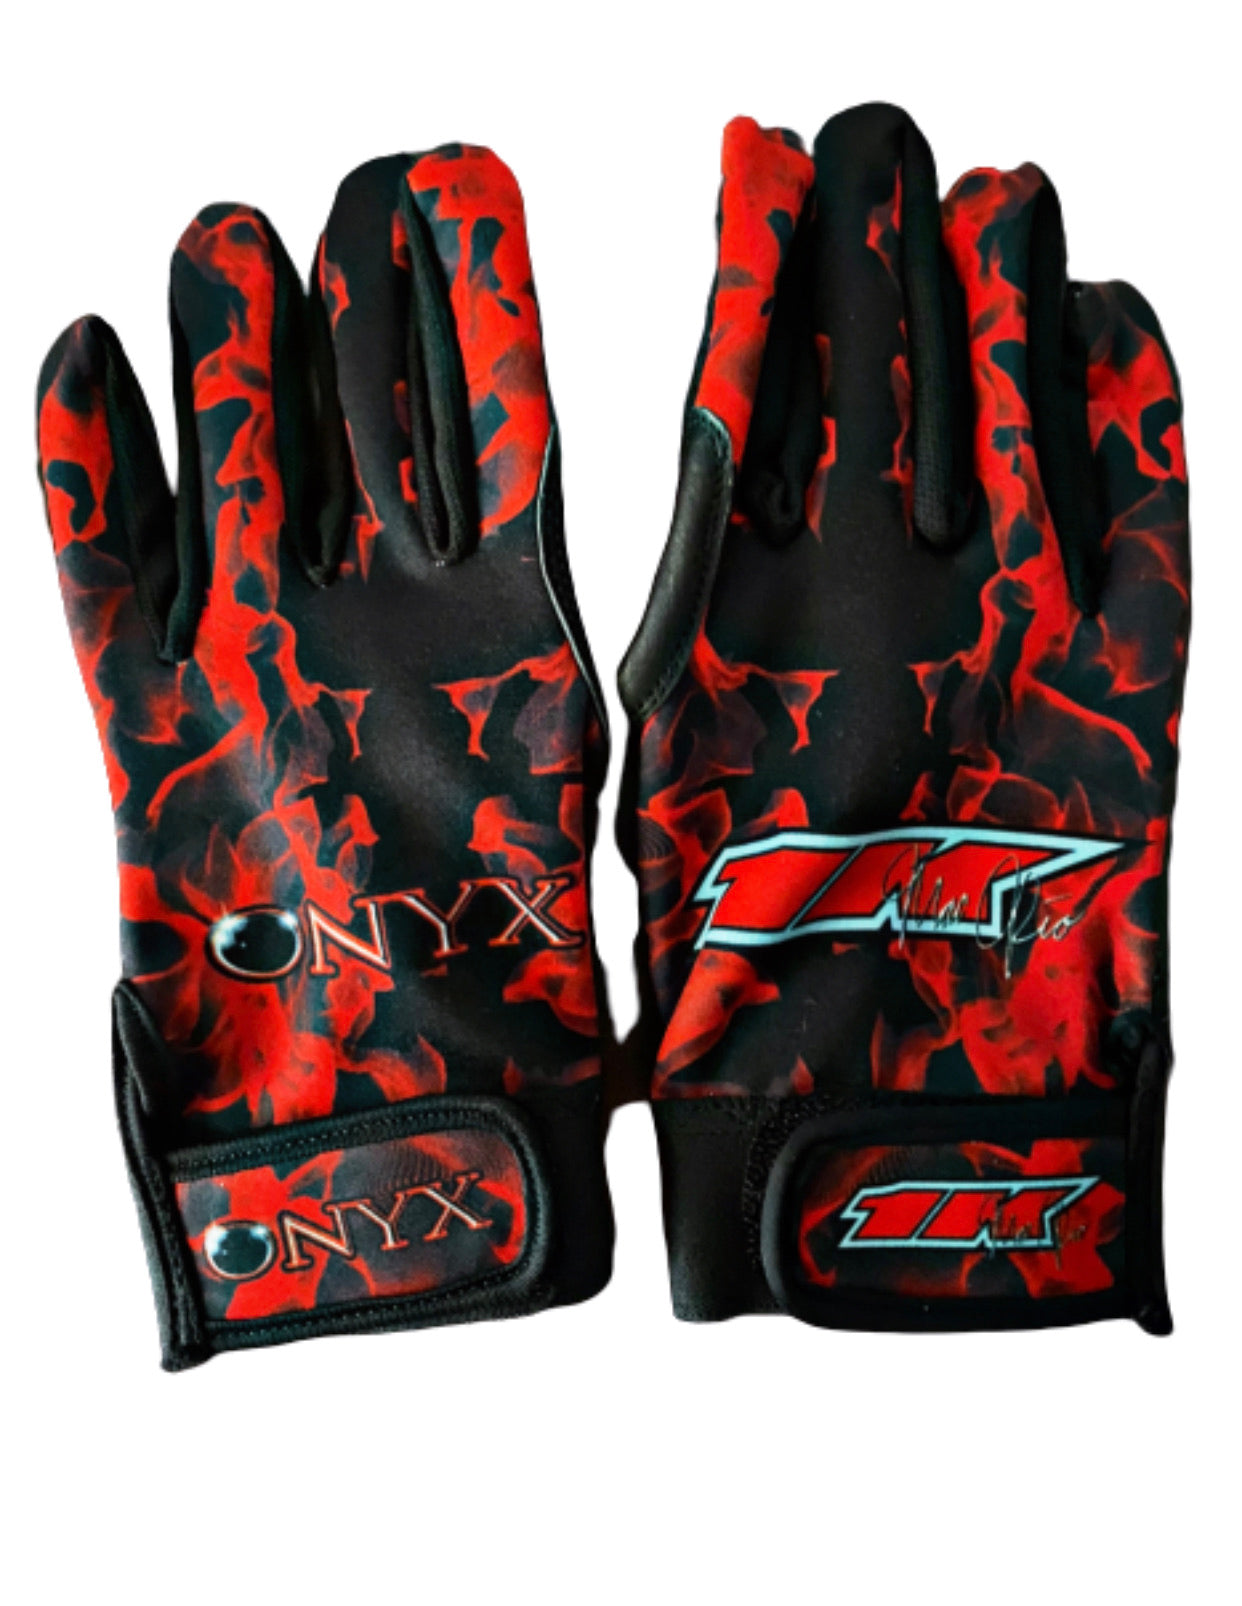 1k Red BATTING GLOVES